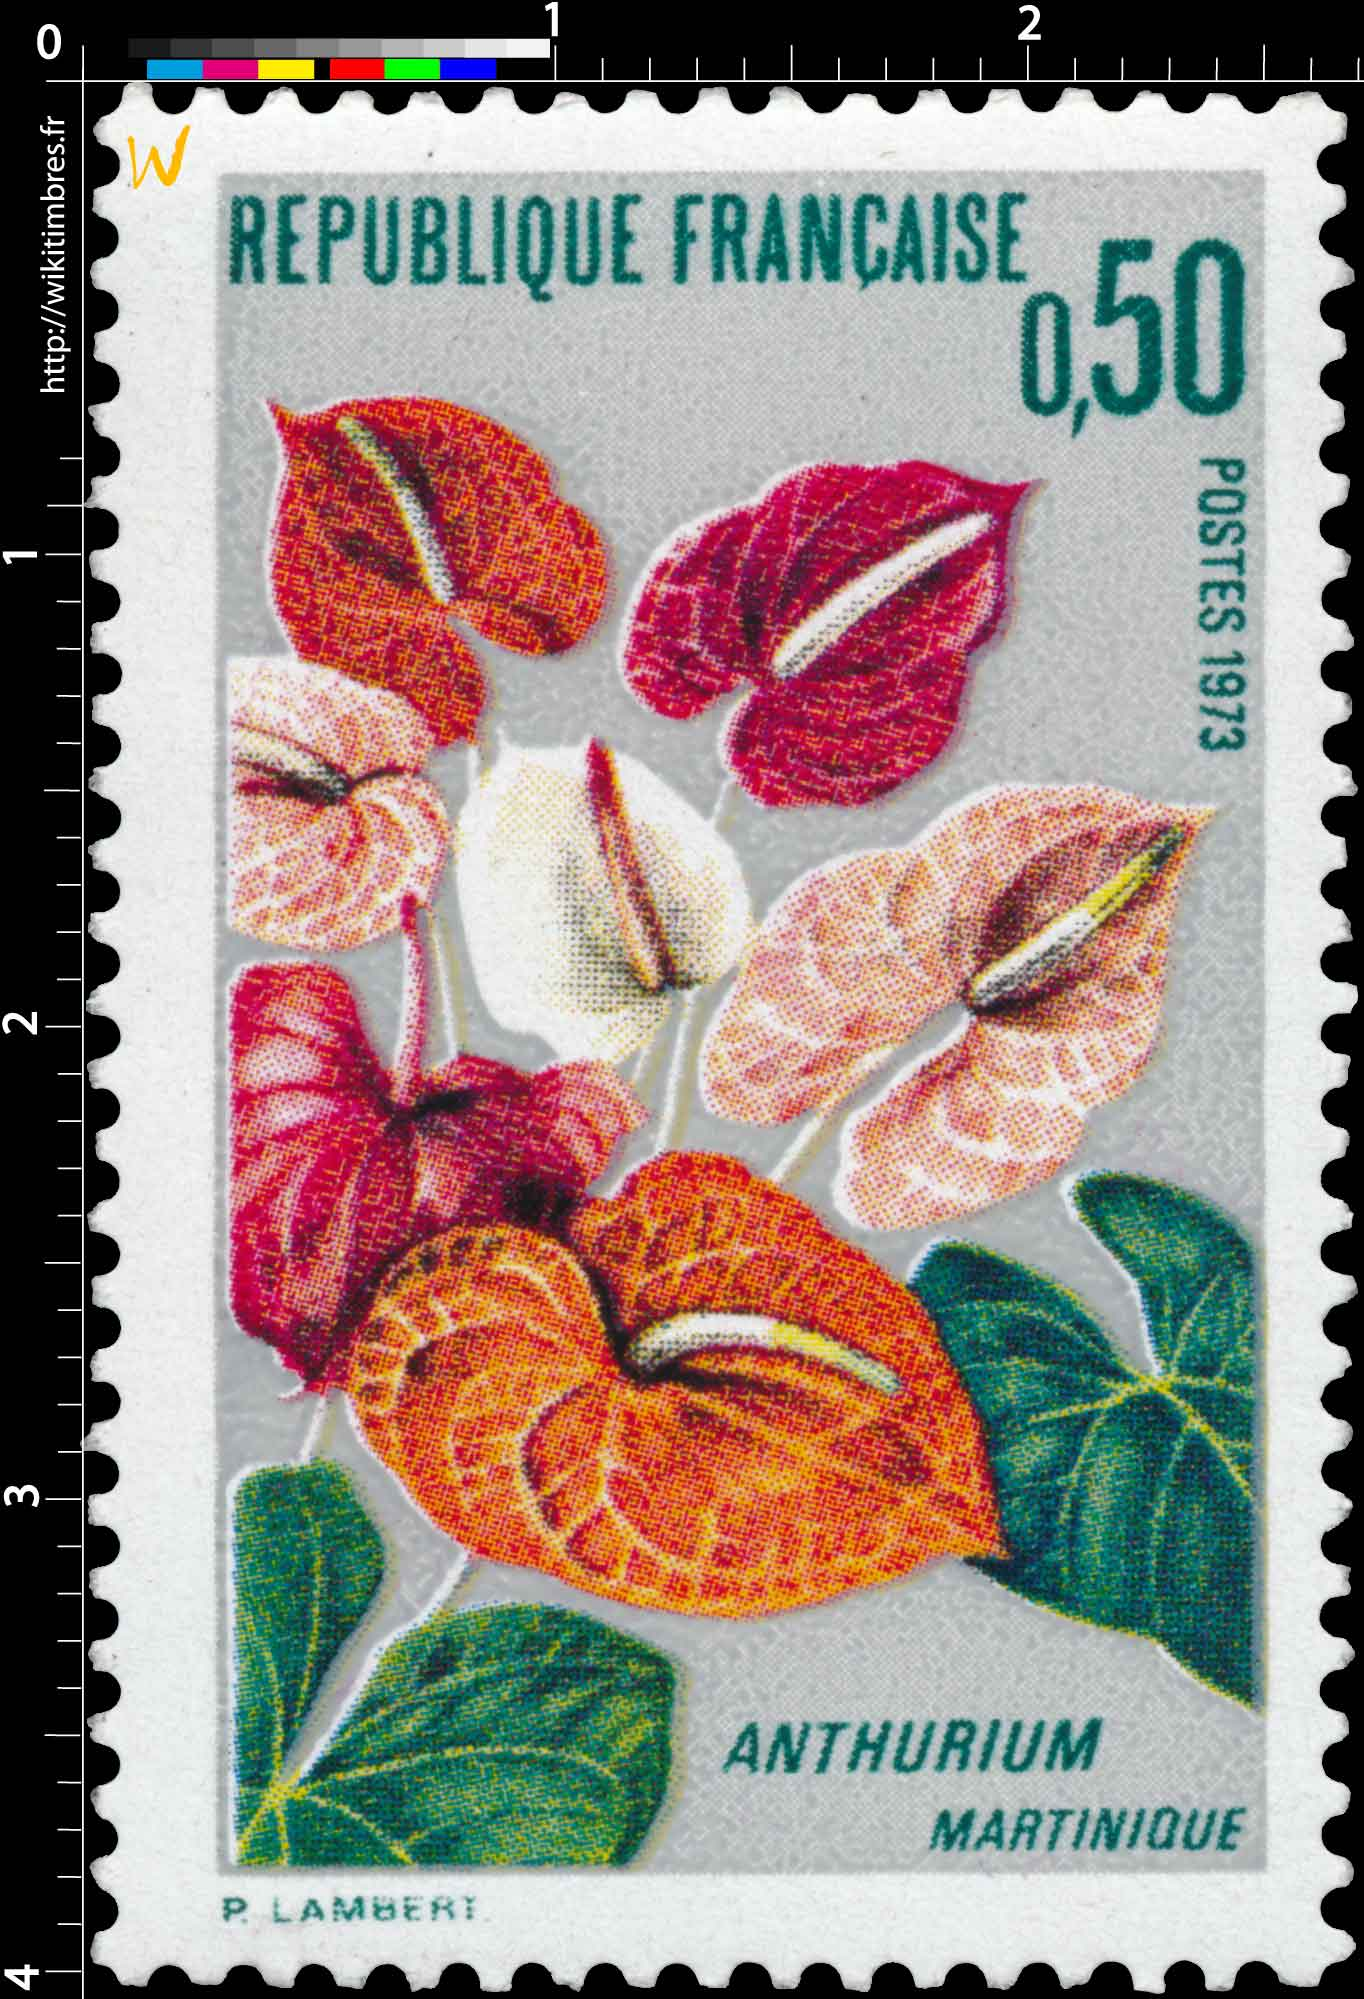 1973 ANTHURIUM MARTINIQUE